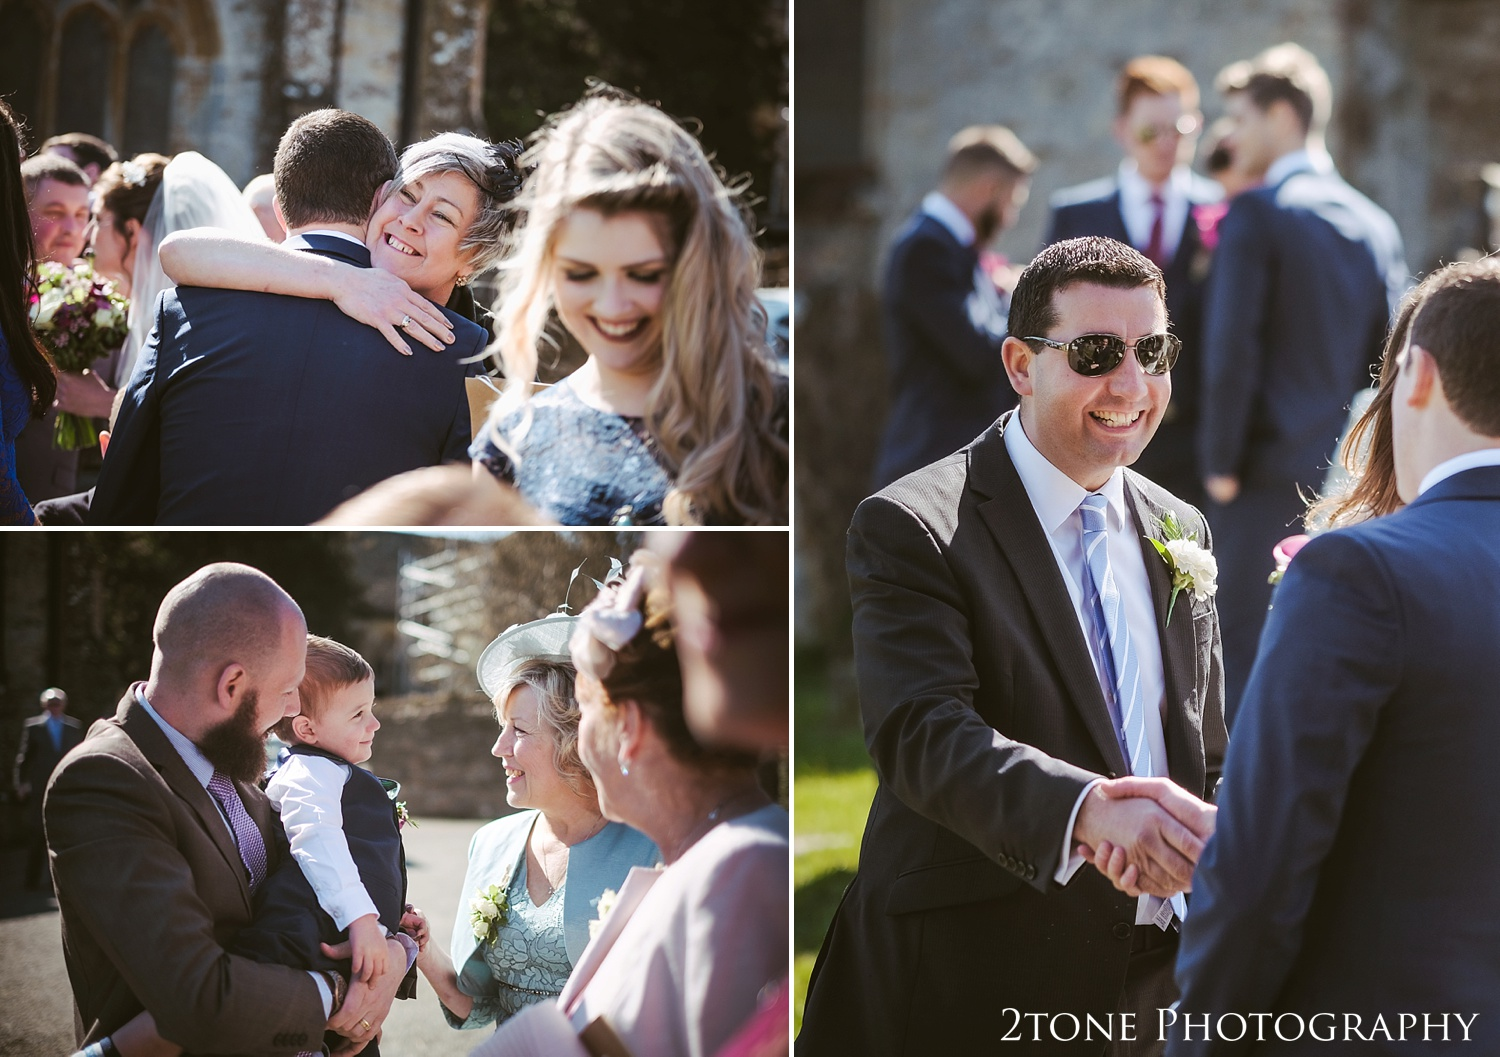 Natural wedding photography in Somerset by www.2tonephotography.co.uk